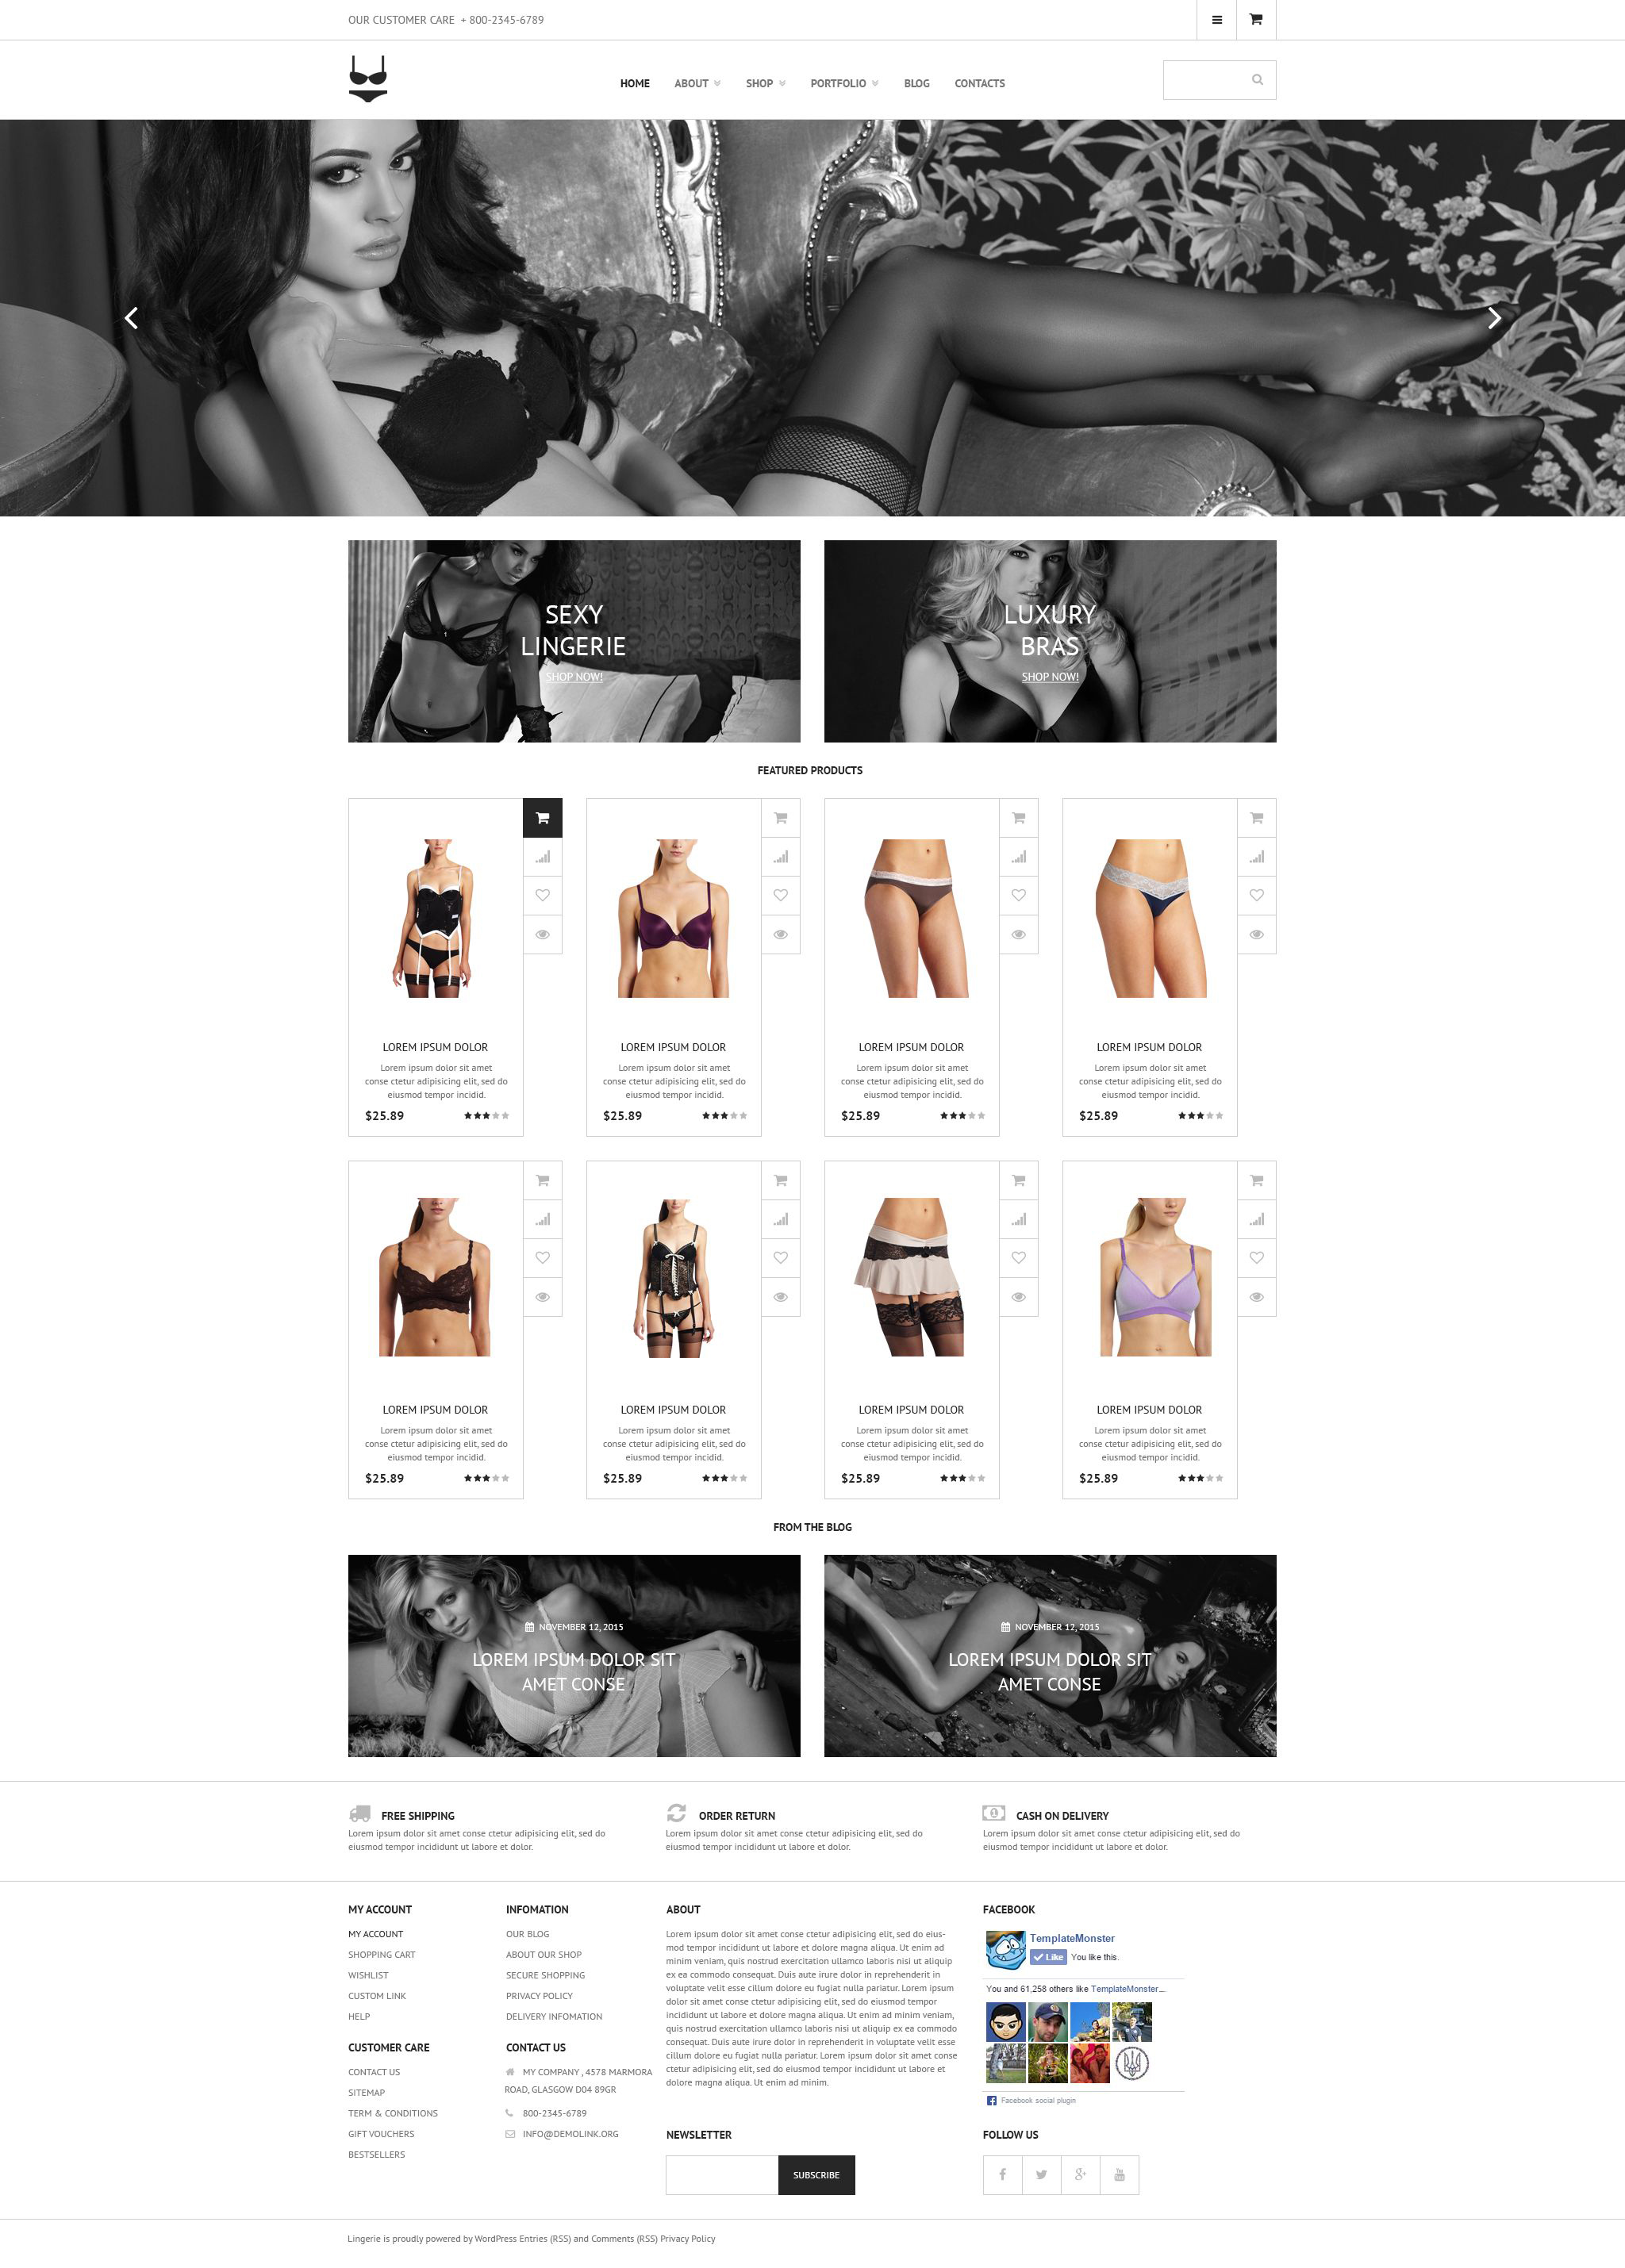 The Lingerie Store WooCommerce Design 53656, one of the best WooCommerce themes of its kind (wedding, most popular), also known as lingerie store WooCommerce template, boutique online shop WooCommerce template, fashion WooCommerce template, brand company WooCommerce template, women WooCommerce template, sexy classic WooCommerce template, stylish  different WooCommerce template, nails WooCommerce template, SPA cosmetic WooCommerce template, health care WooCommerce template, hair WooCommerce template, style and related with lingerie store, boutique online shop, fashion, brand company, women, sexy classic, stylish  different, nails, SPA cosmetic, health care, hair, style, etc.